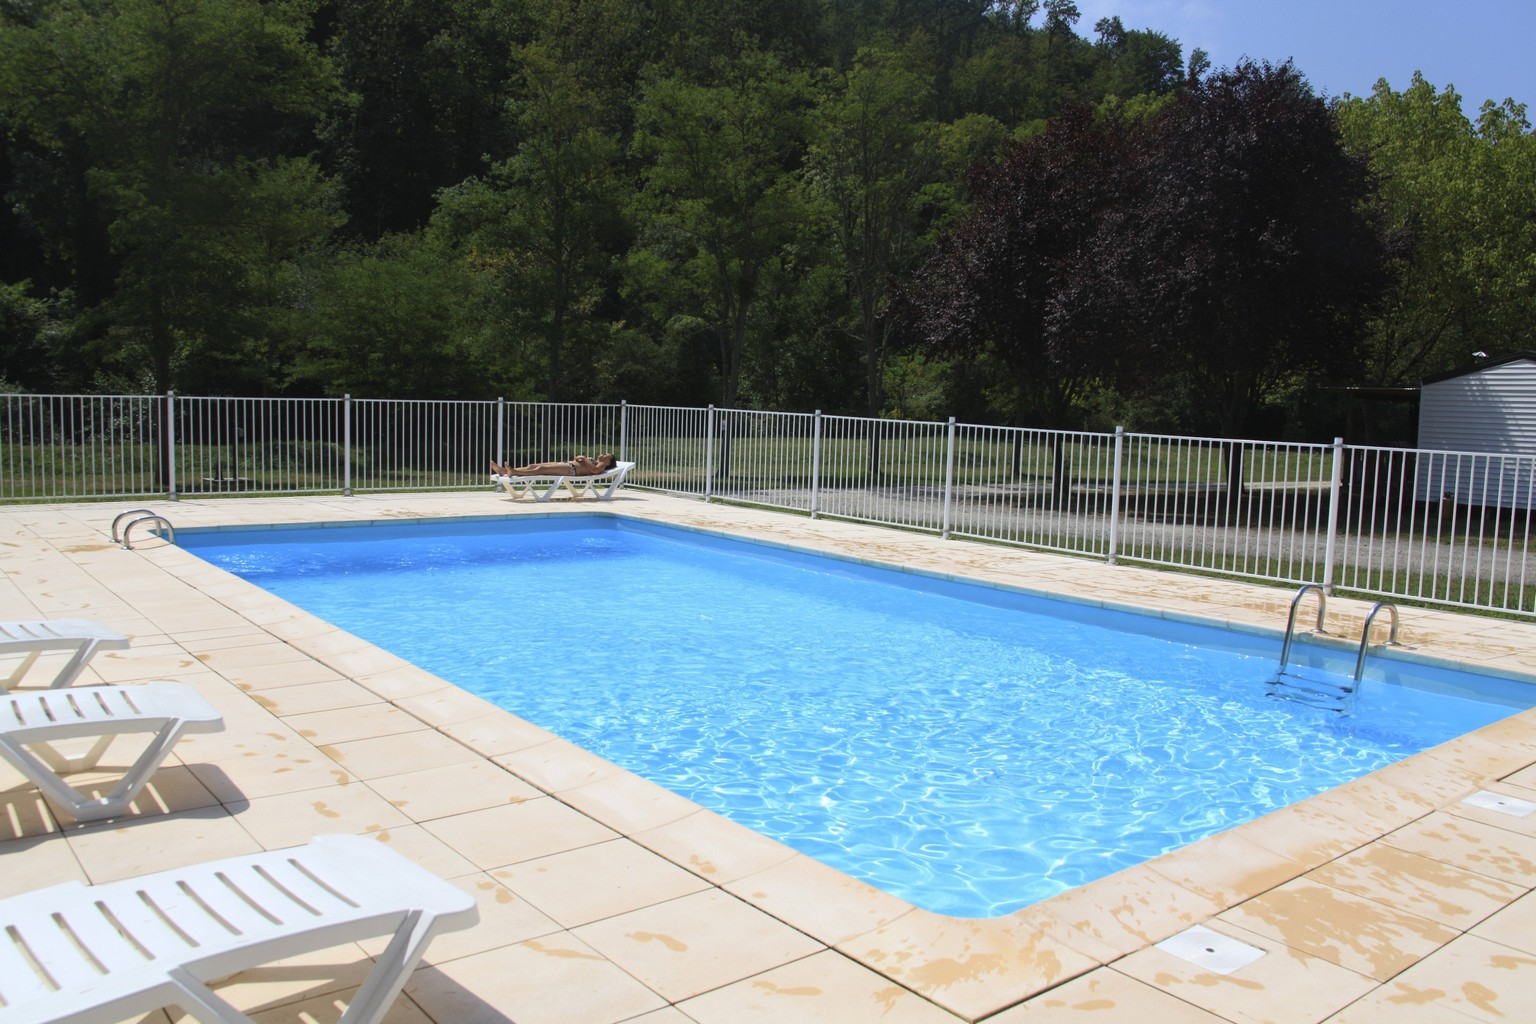 Barri res de protection de piscine faire le bon choix for Piscine barriere